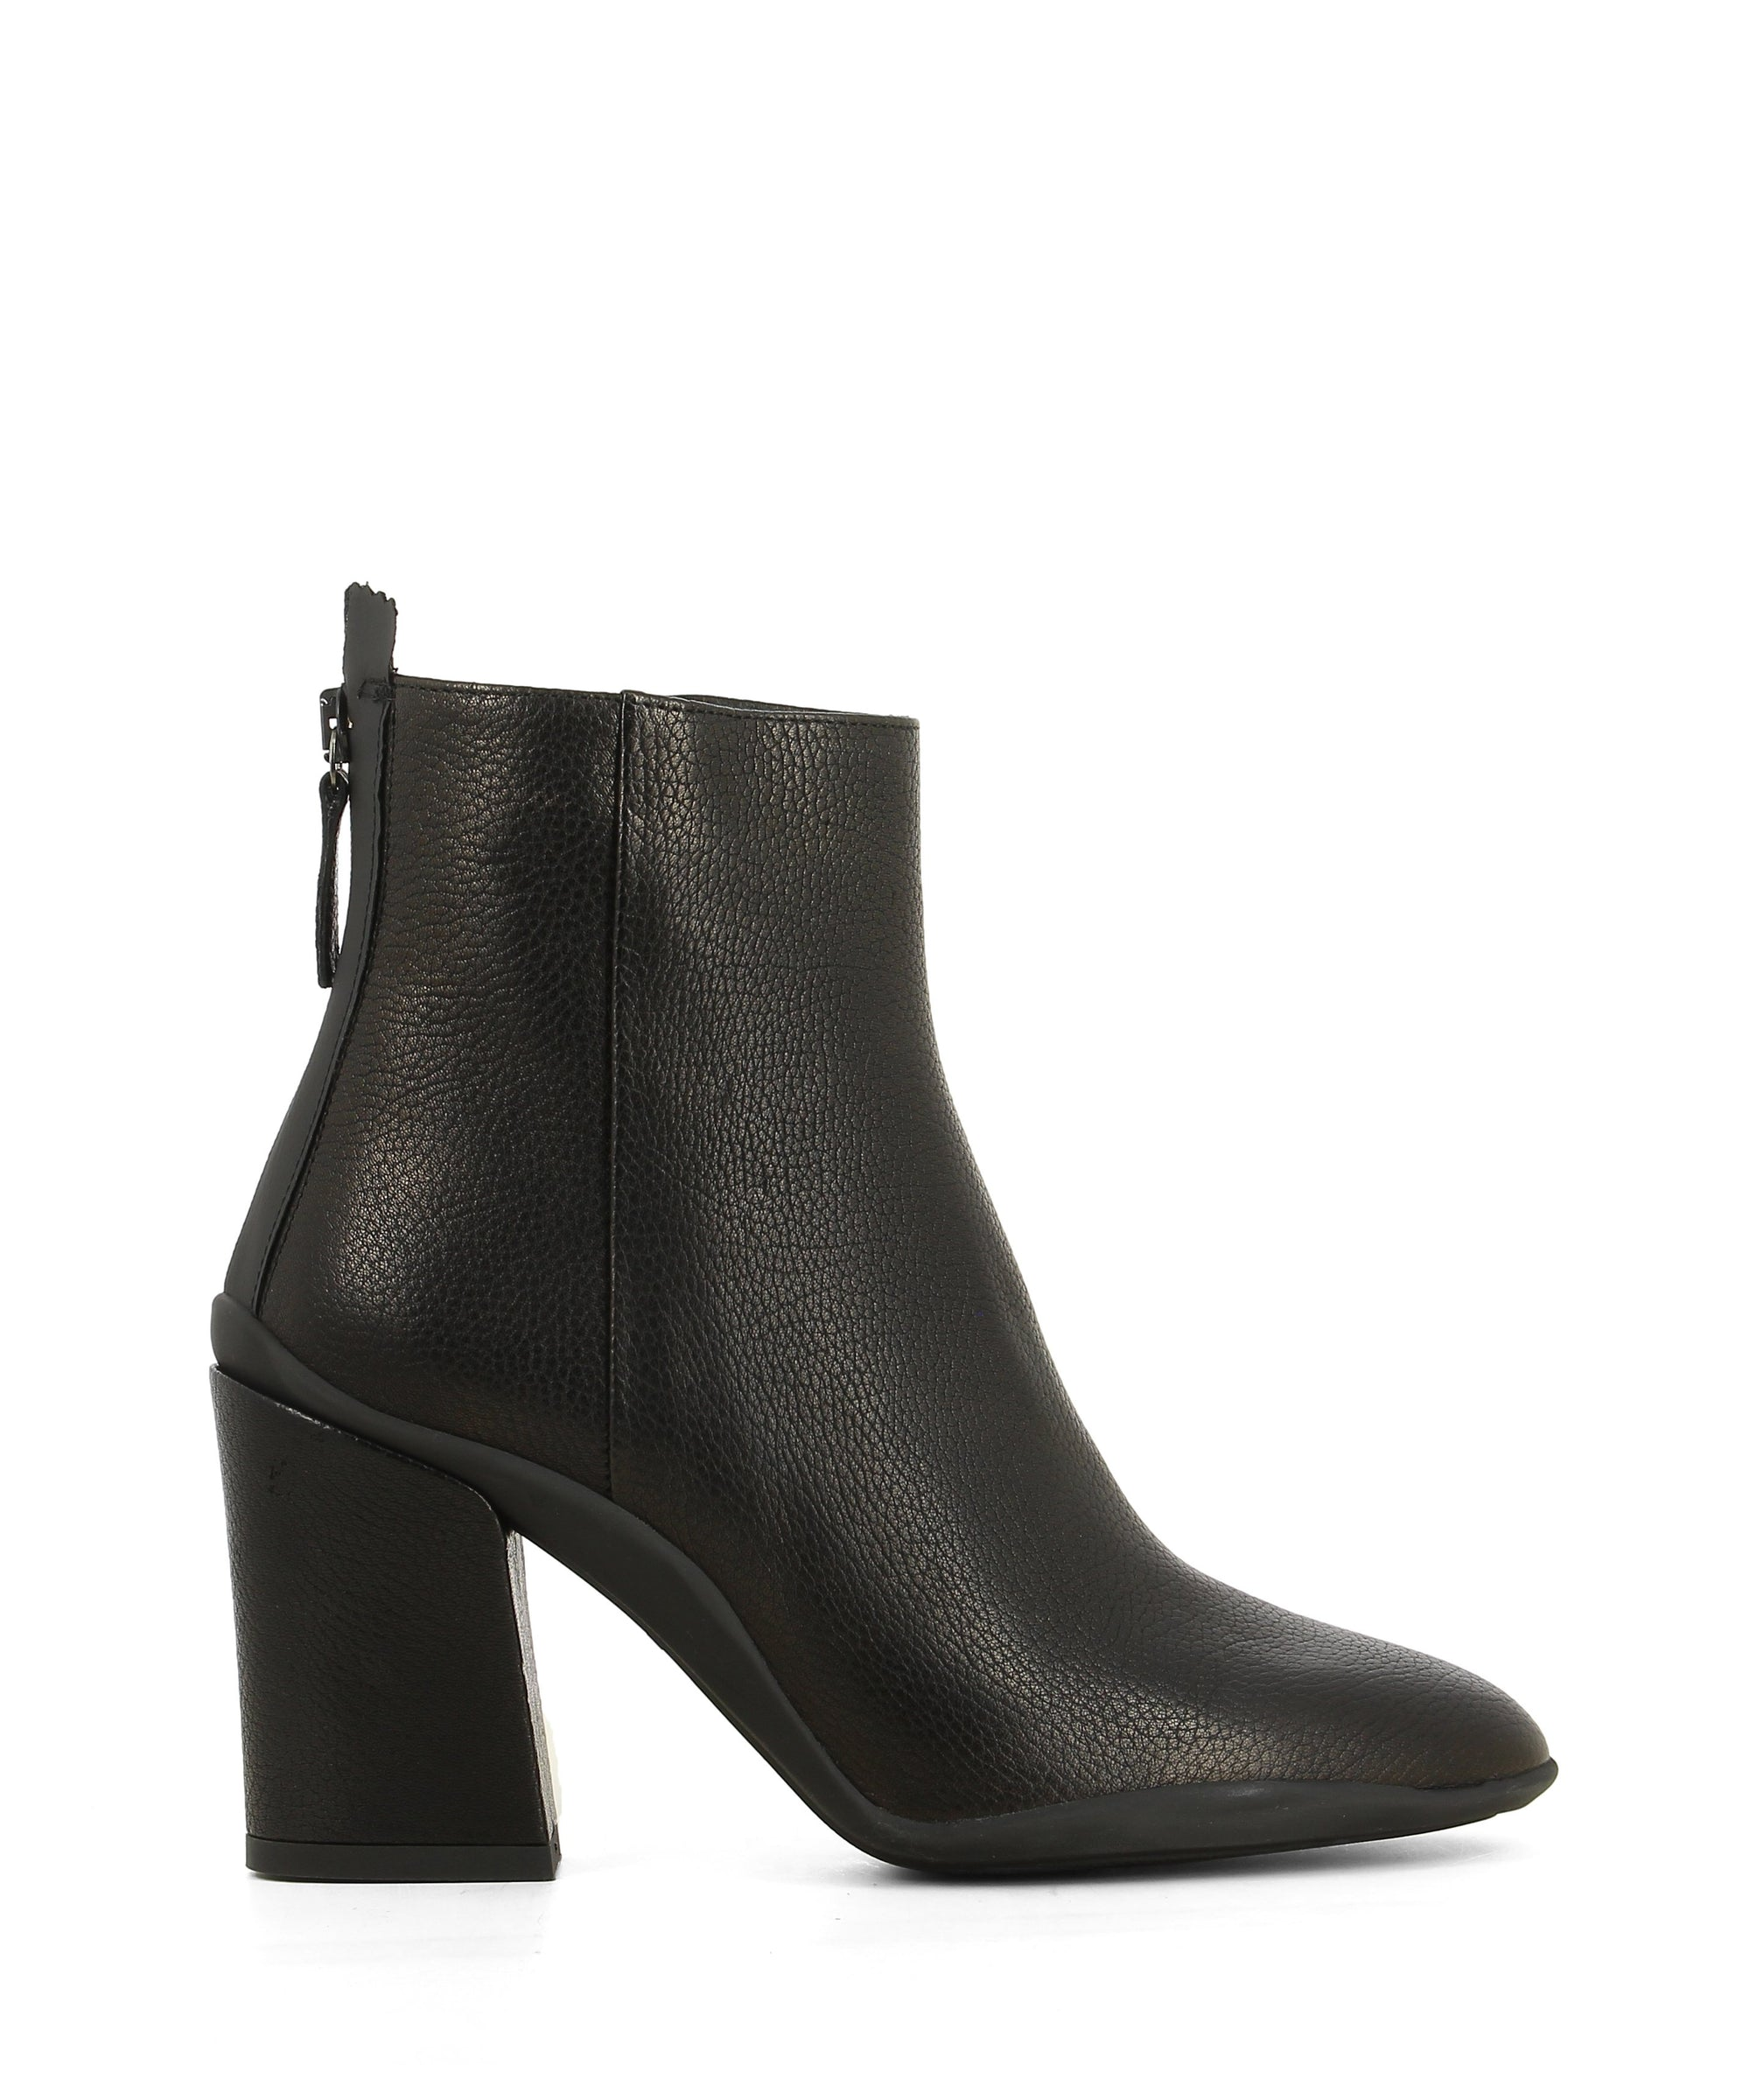 Black leather ankle boots featuring a 8 cm block heel and pointed toe. Handcrafted and made in Italy by Lorenzo Mari. This style runs true to size.